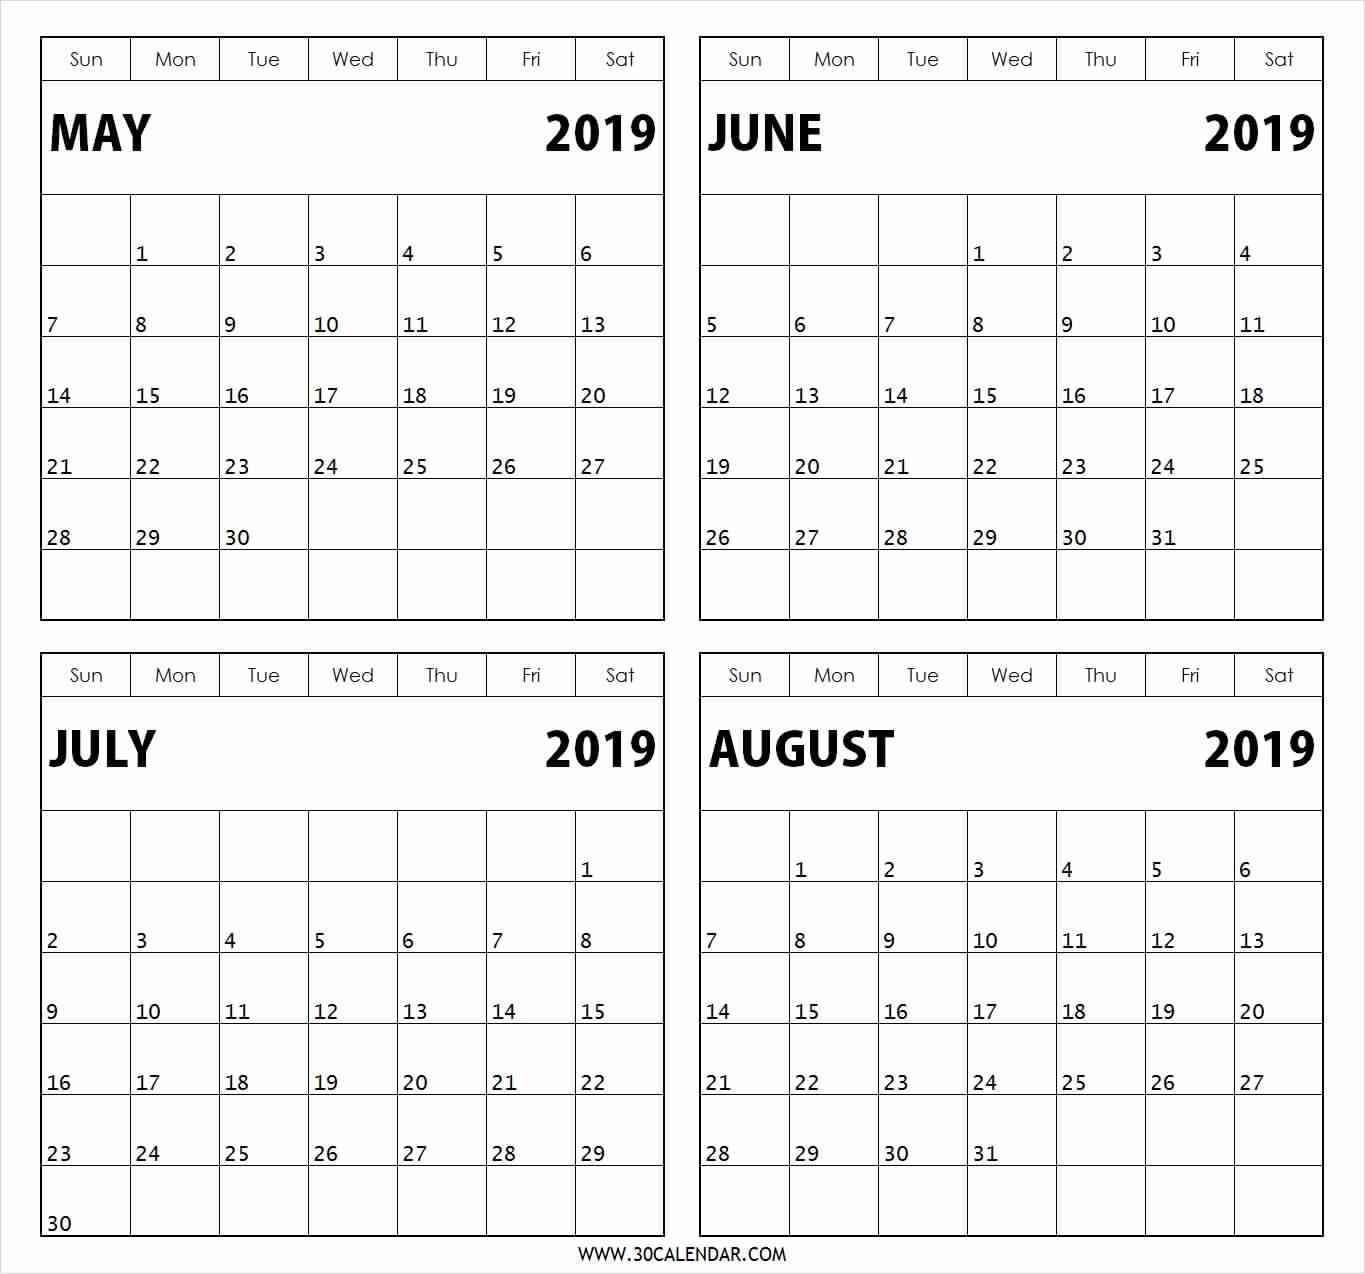 Free Printable Calendar 3 Months Per Page 2019 • Printable within Printable 3 Month Calendar